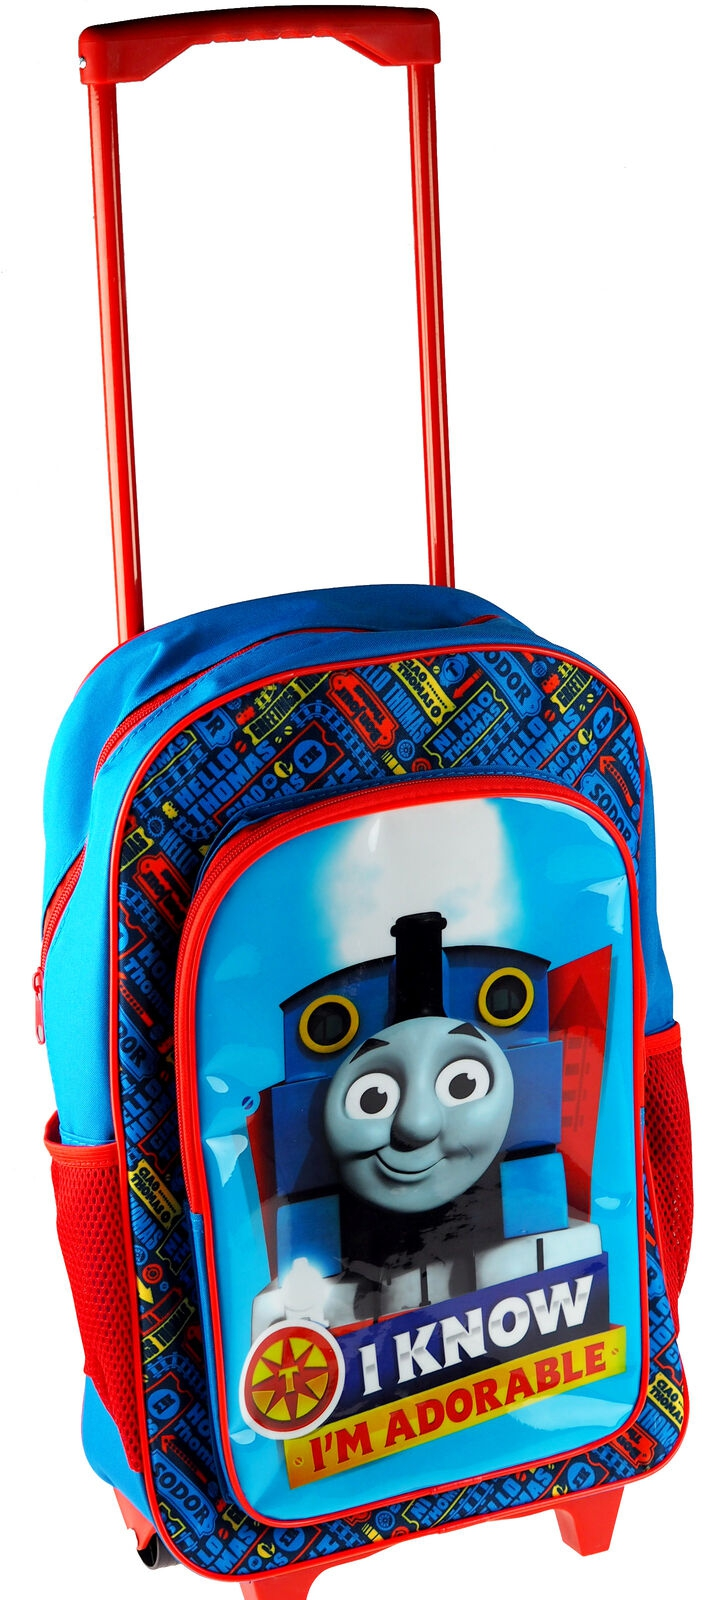 Thomas and Friends Blue Luggage Deluxe School Travel Trolley Roller Wheeled Bag